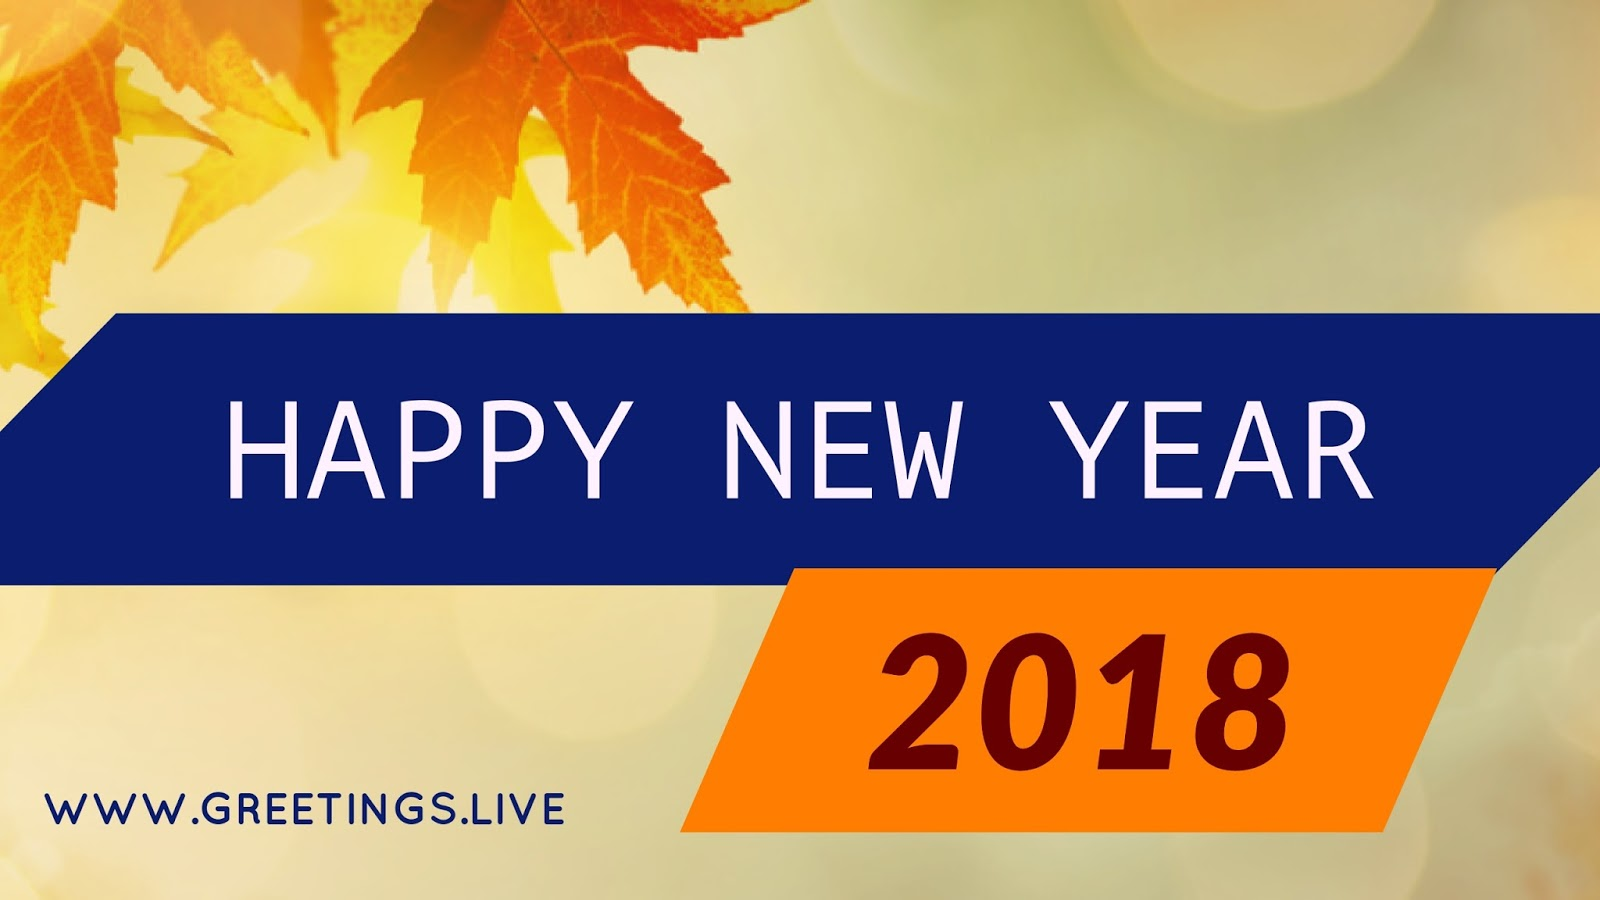 2018 New Year Wishes Greetings 5 Simple New Year Celebration